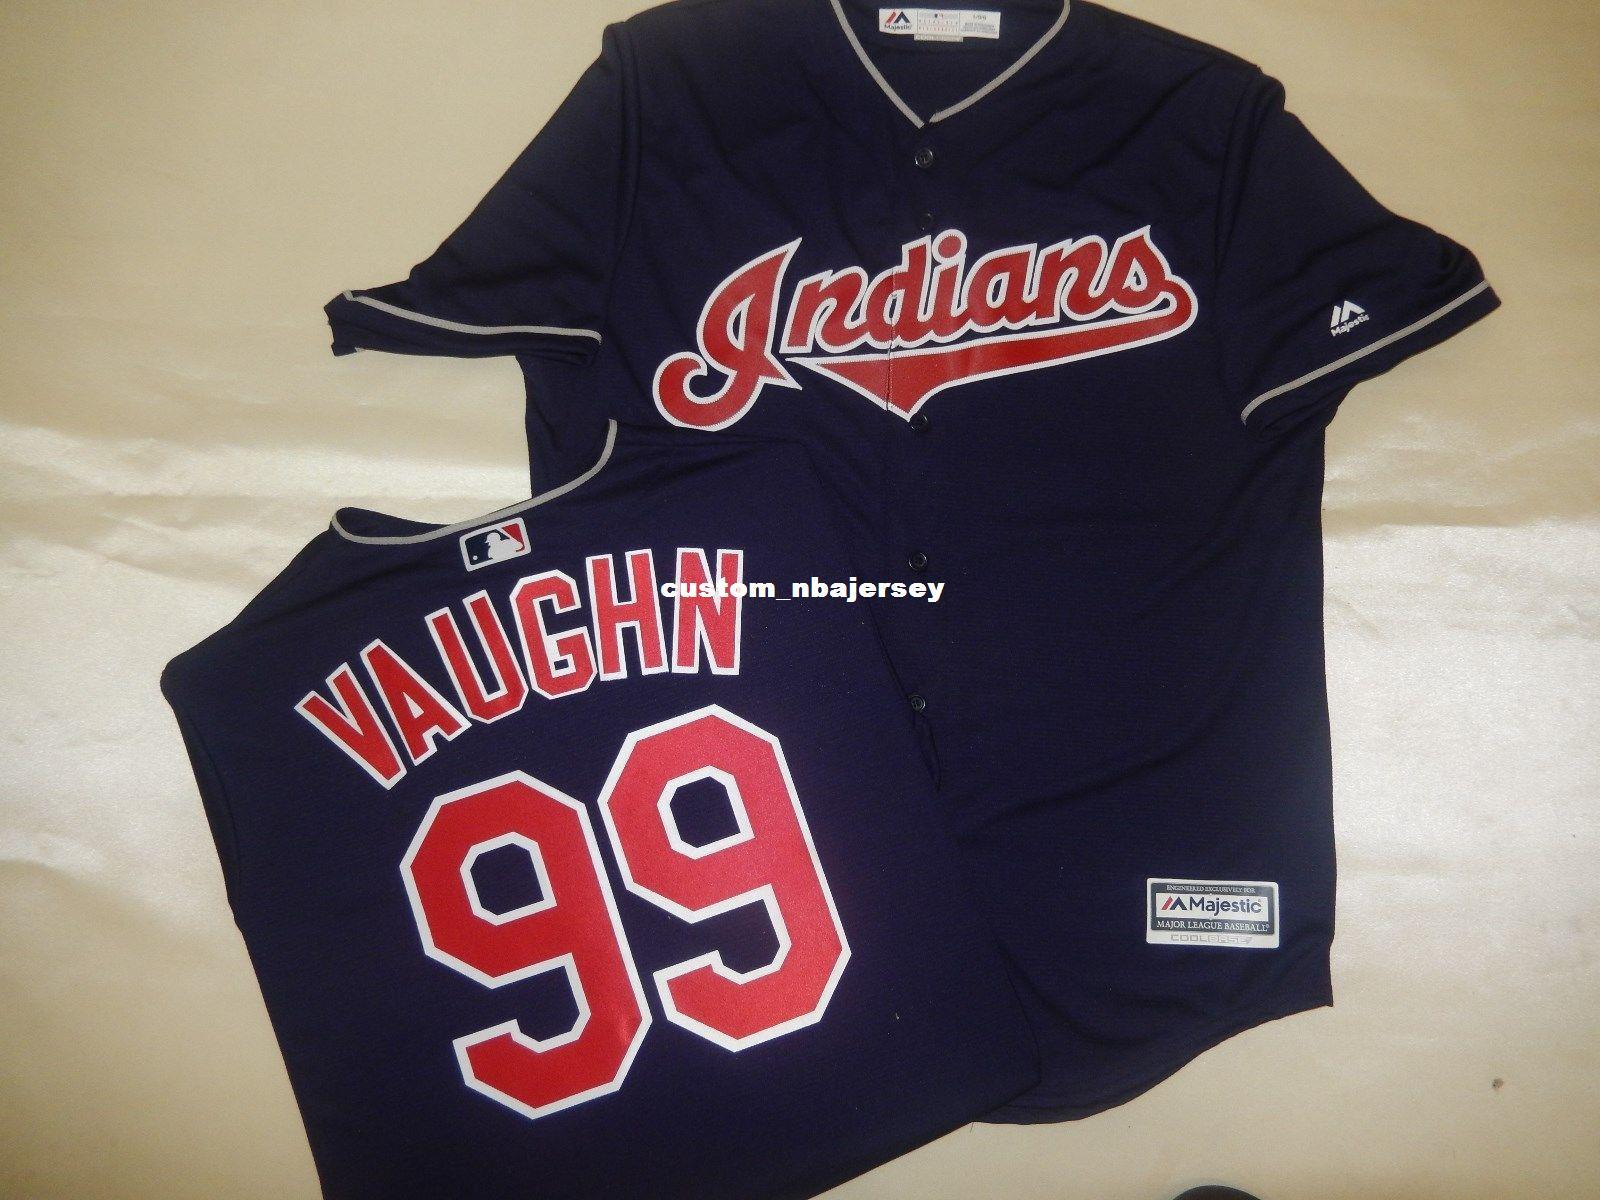 2019 Cheap Custom RICKY VAUGHN WILD THING Cool Base Baseball Jersey  Stitched Customize Any Name Number MEN WOMEN BASEBALL JERSEY XS 5XL From ... 3e9b5d9fd